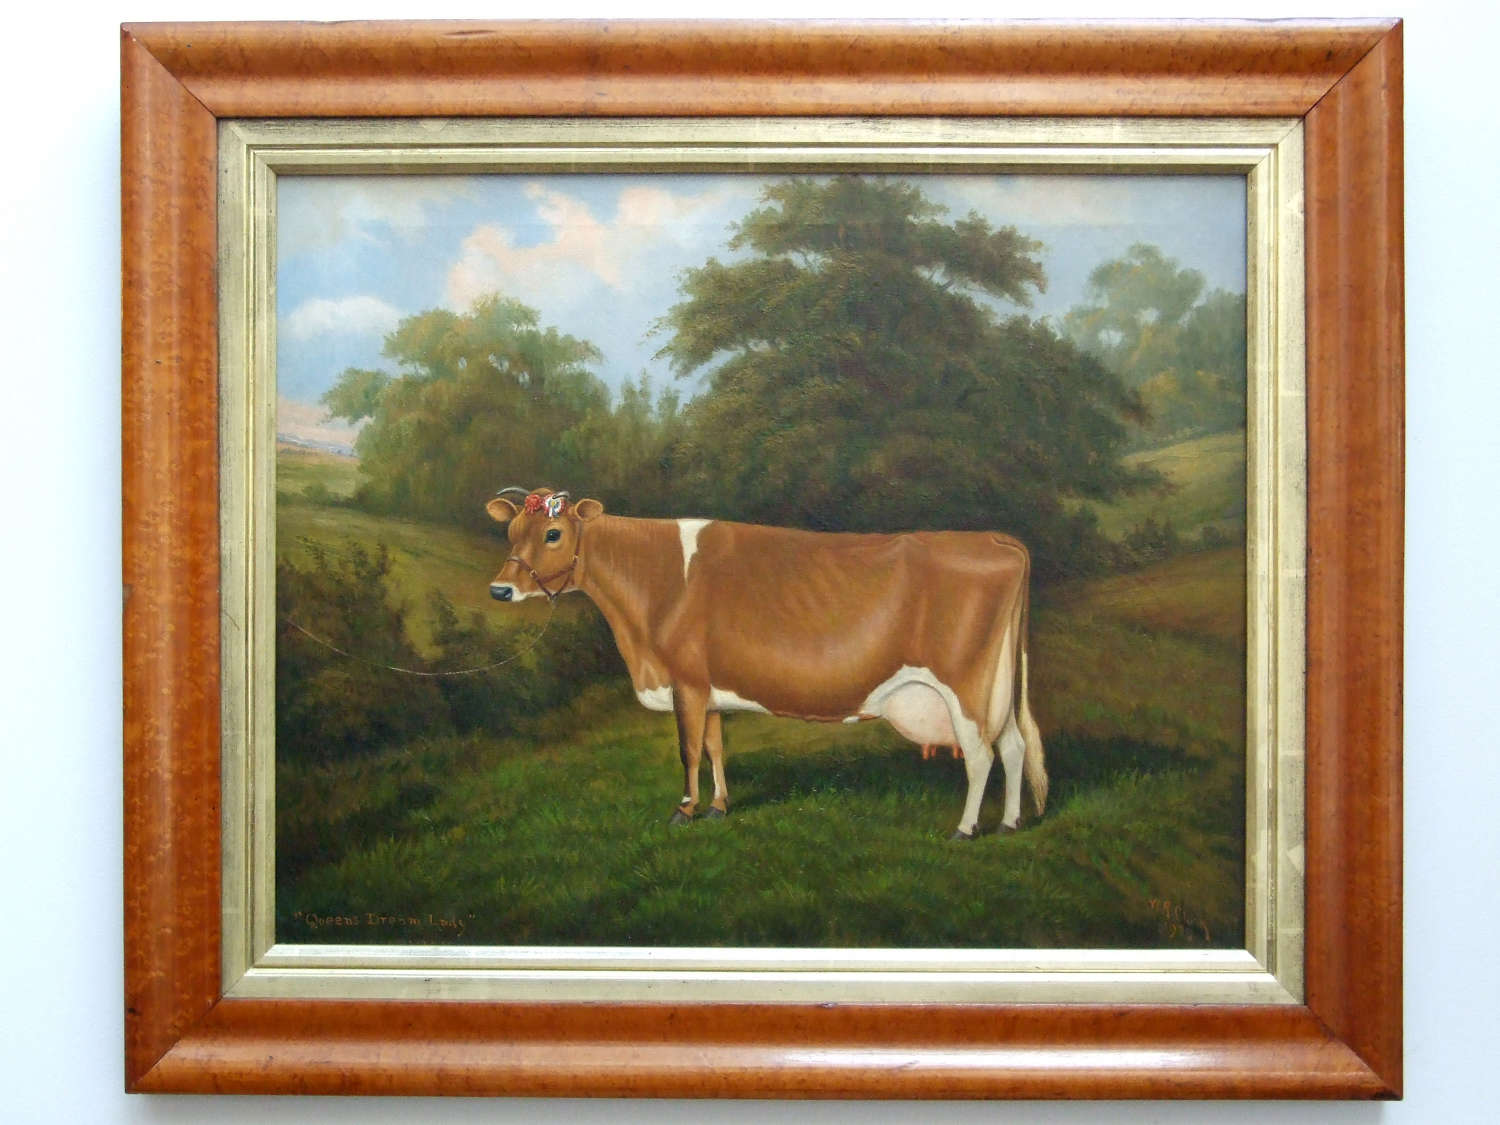 Very fine oil painting of prize Jersey cow by W.A.Clark